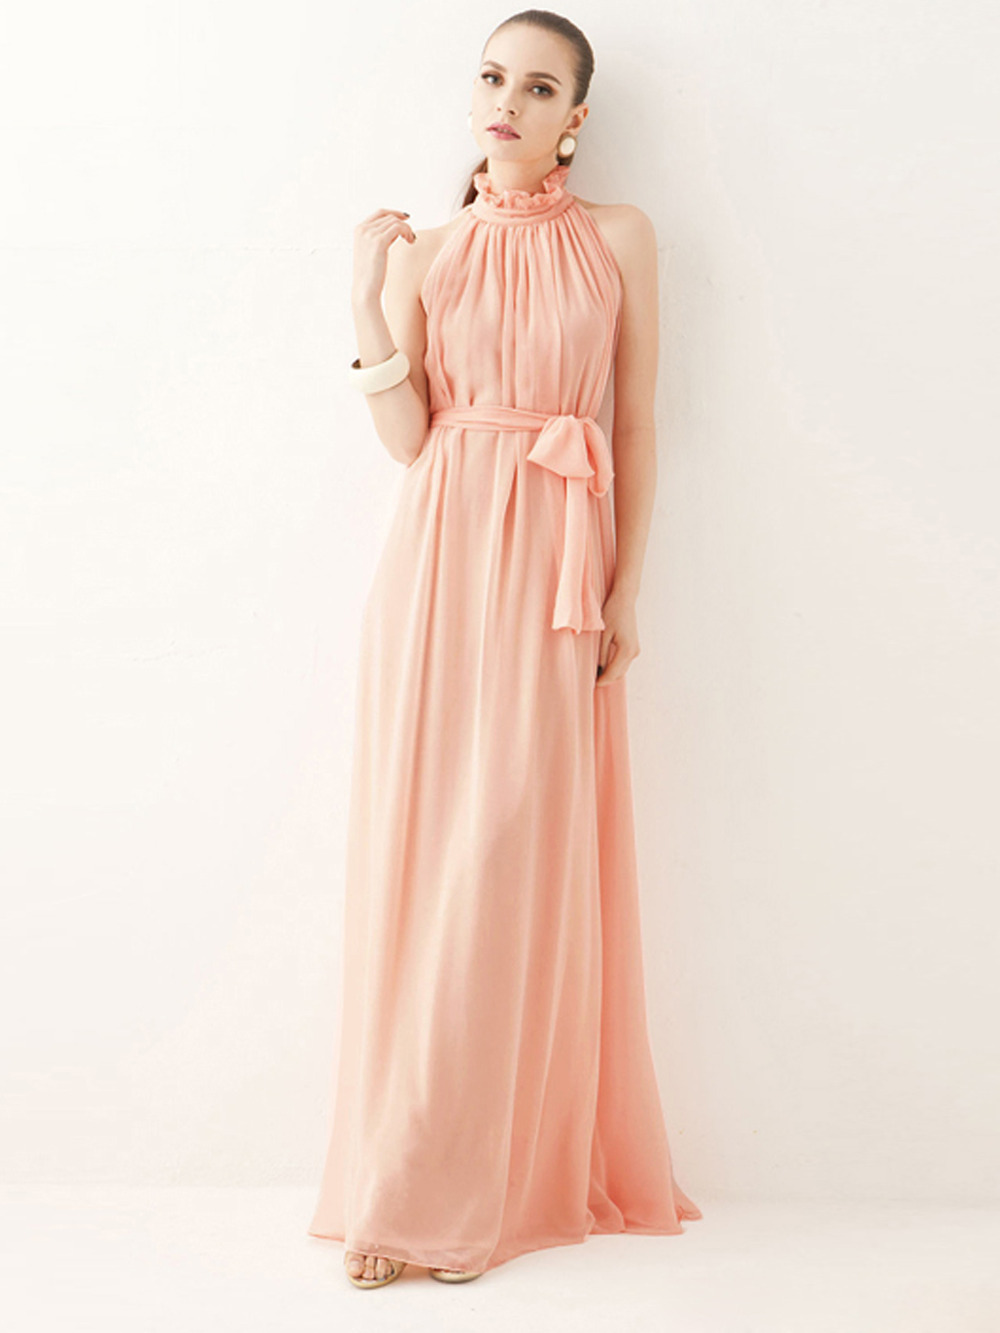 Peach pink long elegant maternity dress gown for summer holiday peach pink long elegant maternity dress gown for summer holiday beach maxi dress in dresses from womens clothing accessories on aliexpress alibaba ombrellifo Choice Image